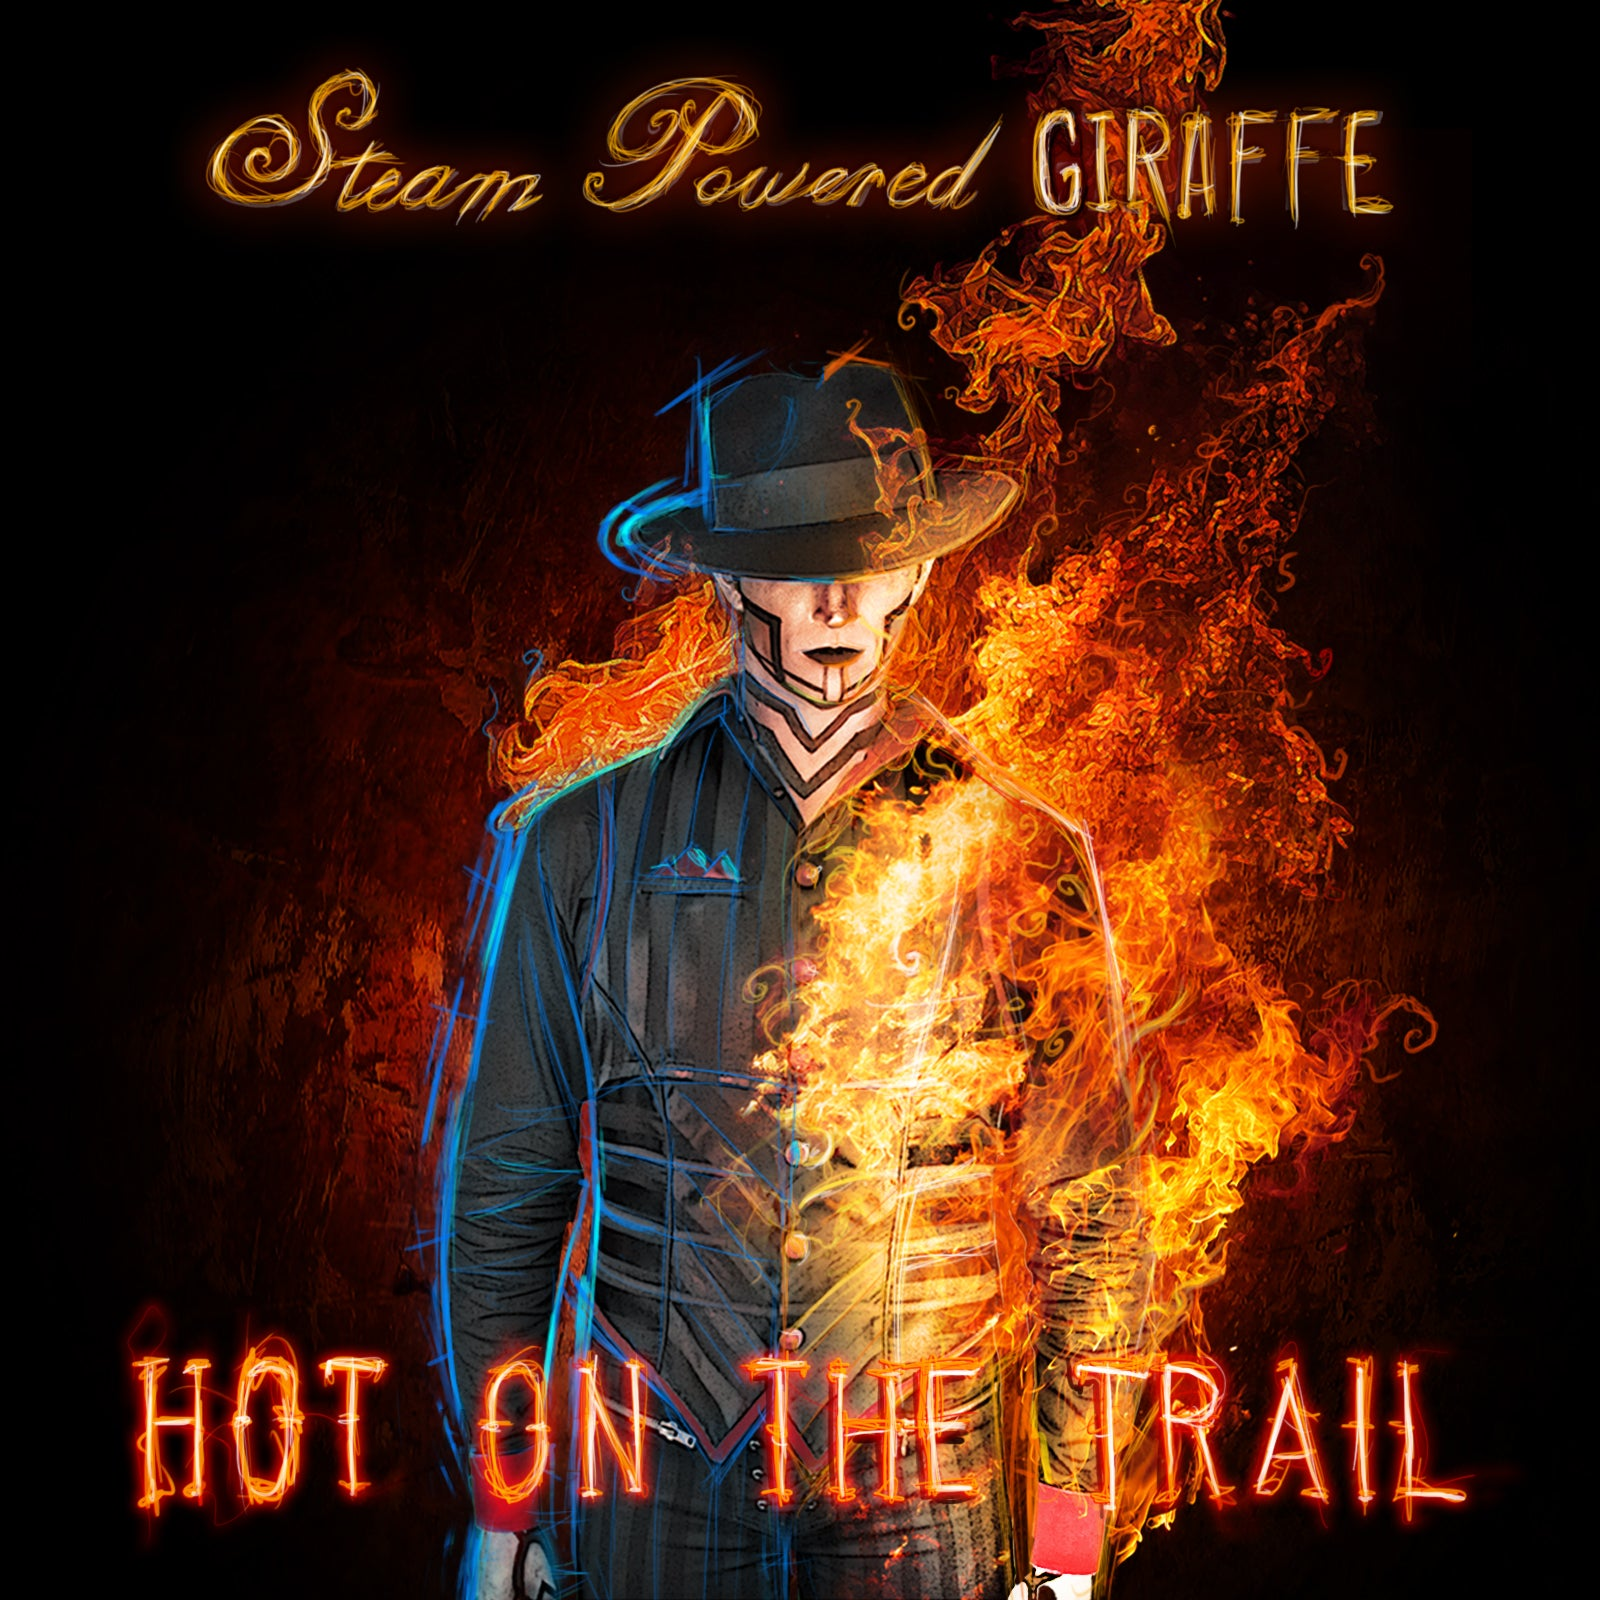 Hot on the Trail (2019)